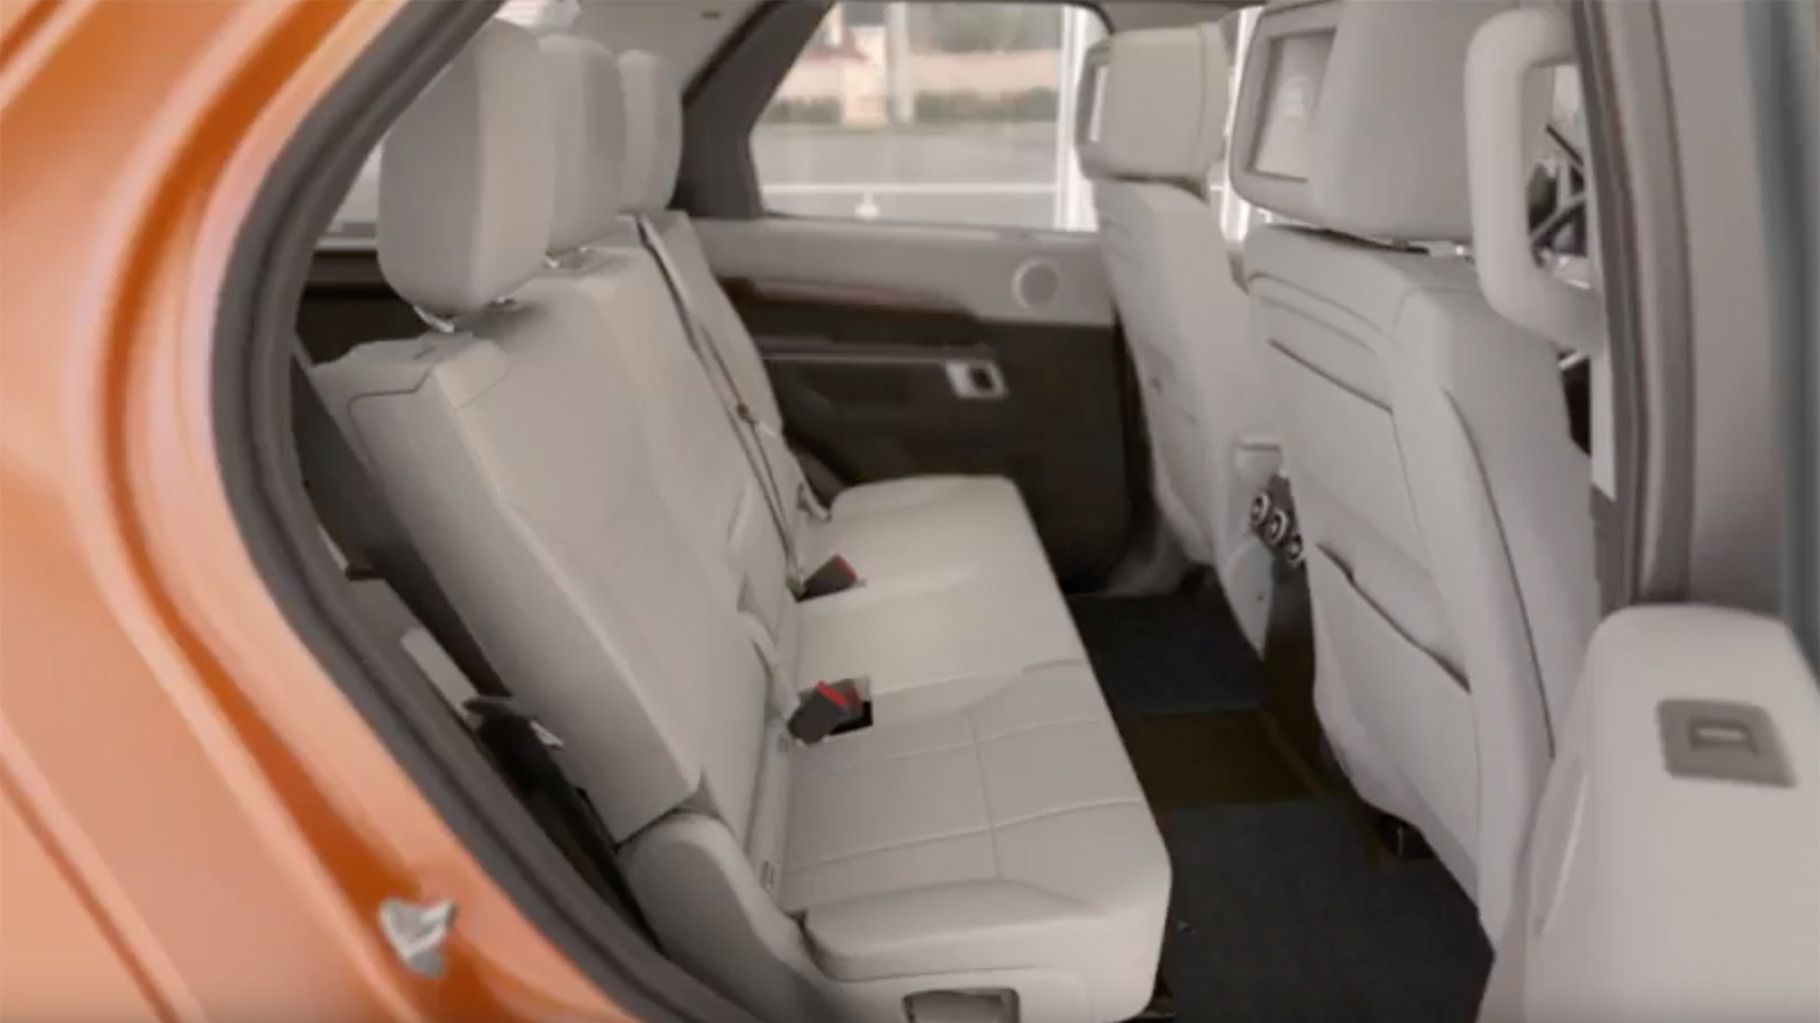 2017 Discovery | Manual Third-Row Seat Operation